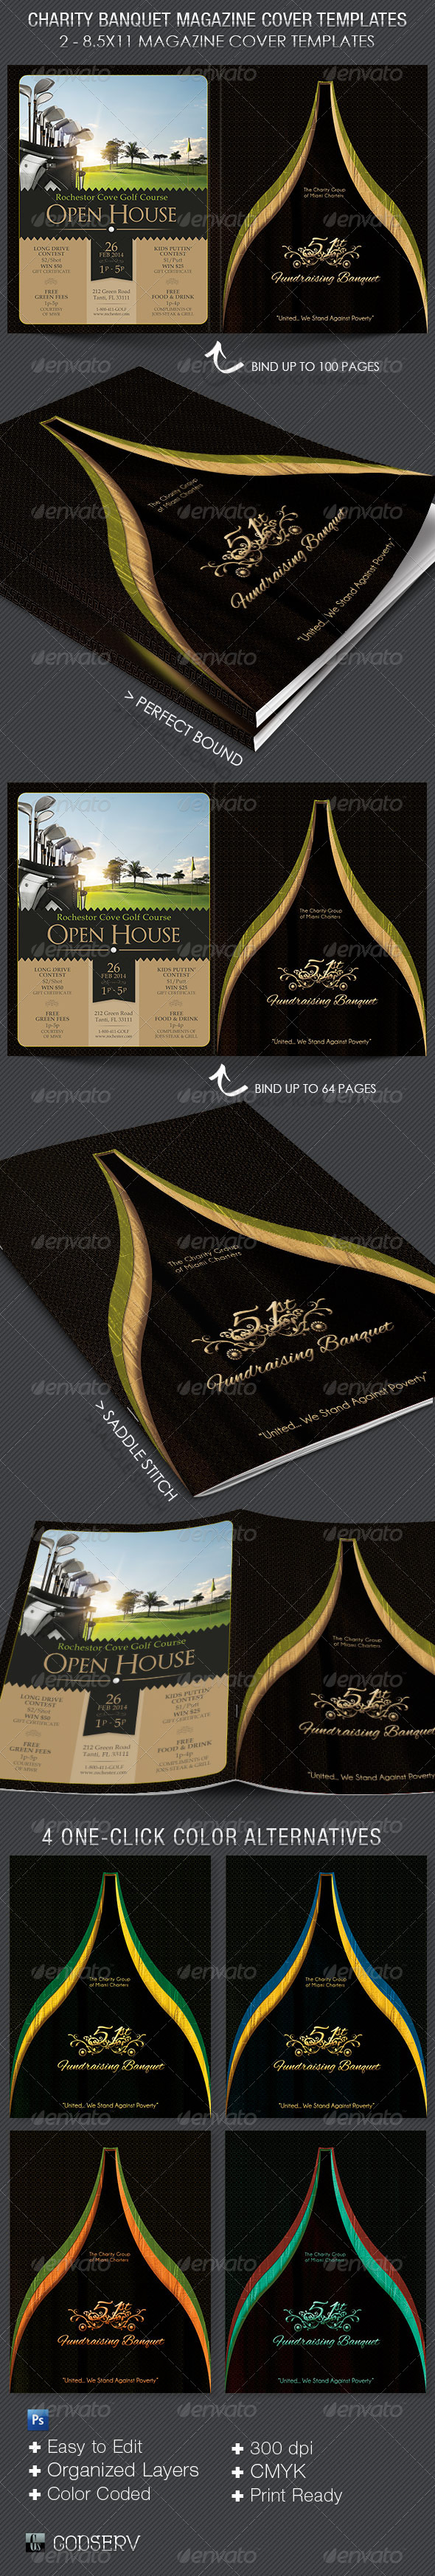 GraphicRiver Charity Banquet Magazine Cover Template 5729544